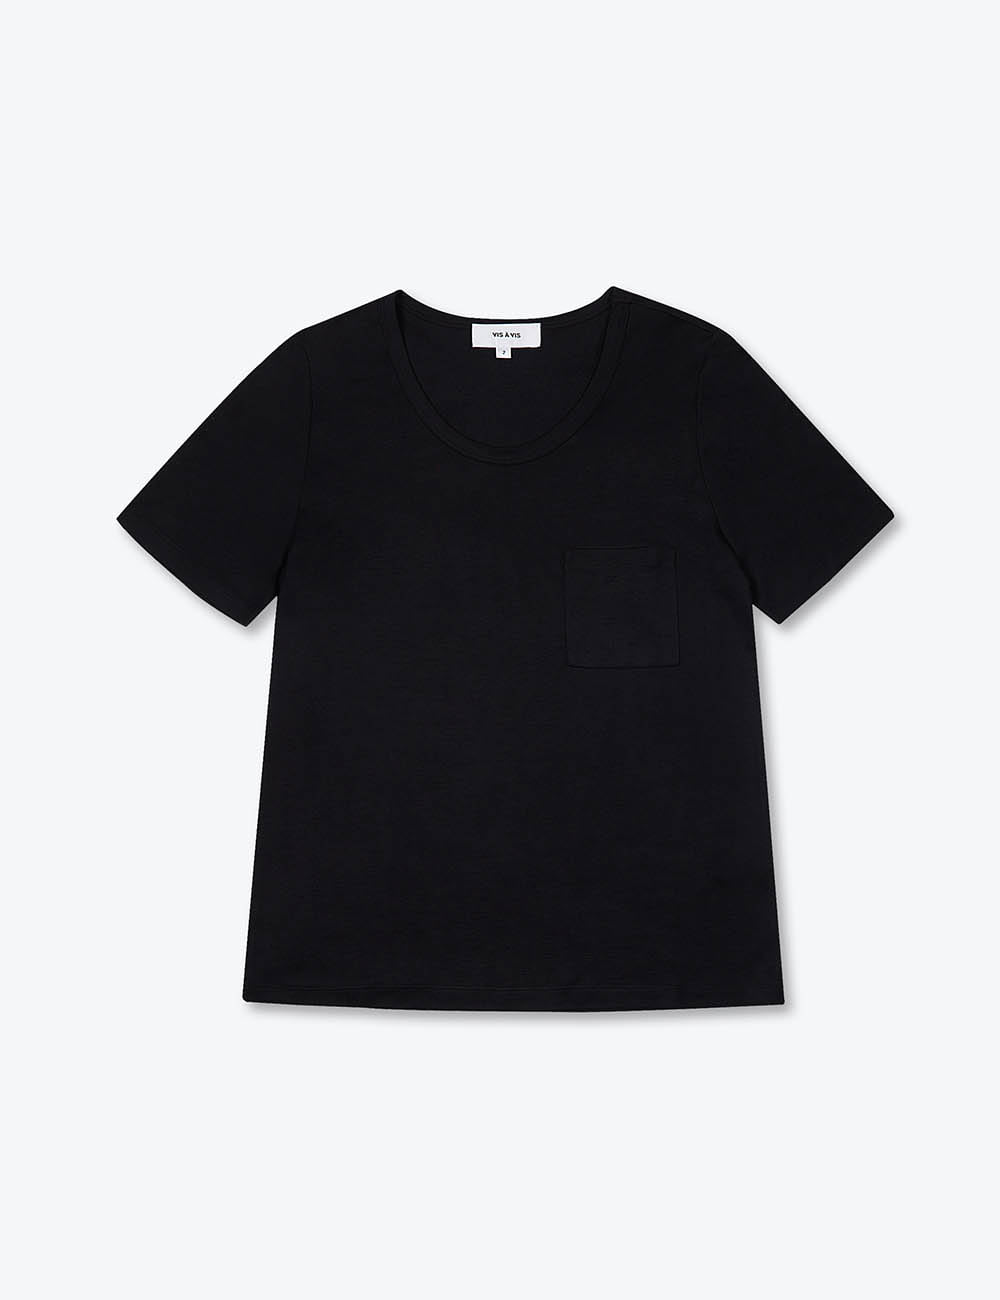 U-NECK T-SHIRT (BLACK)